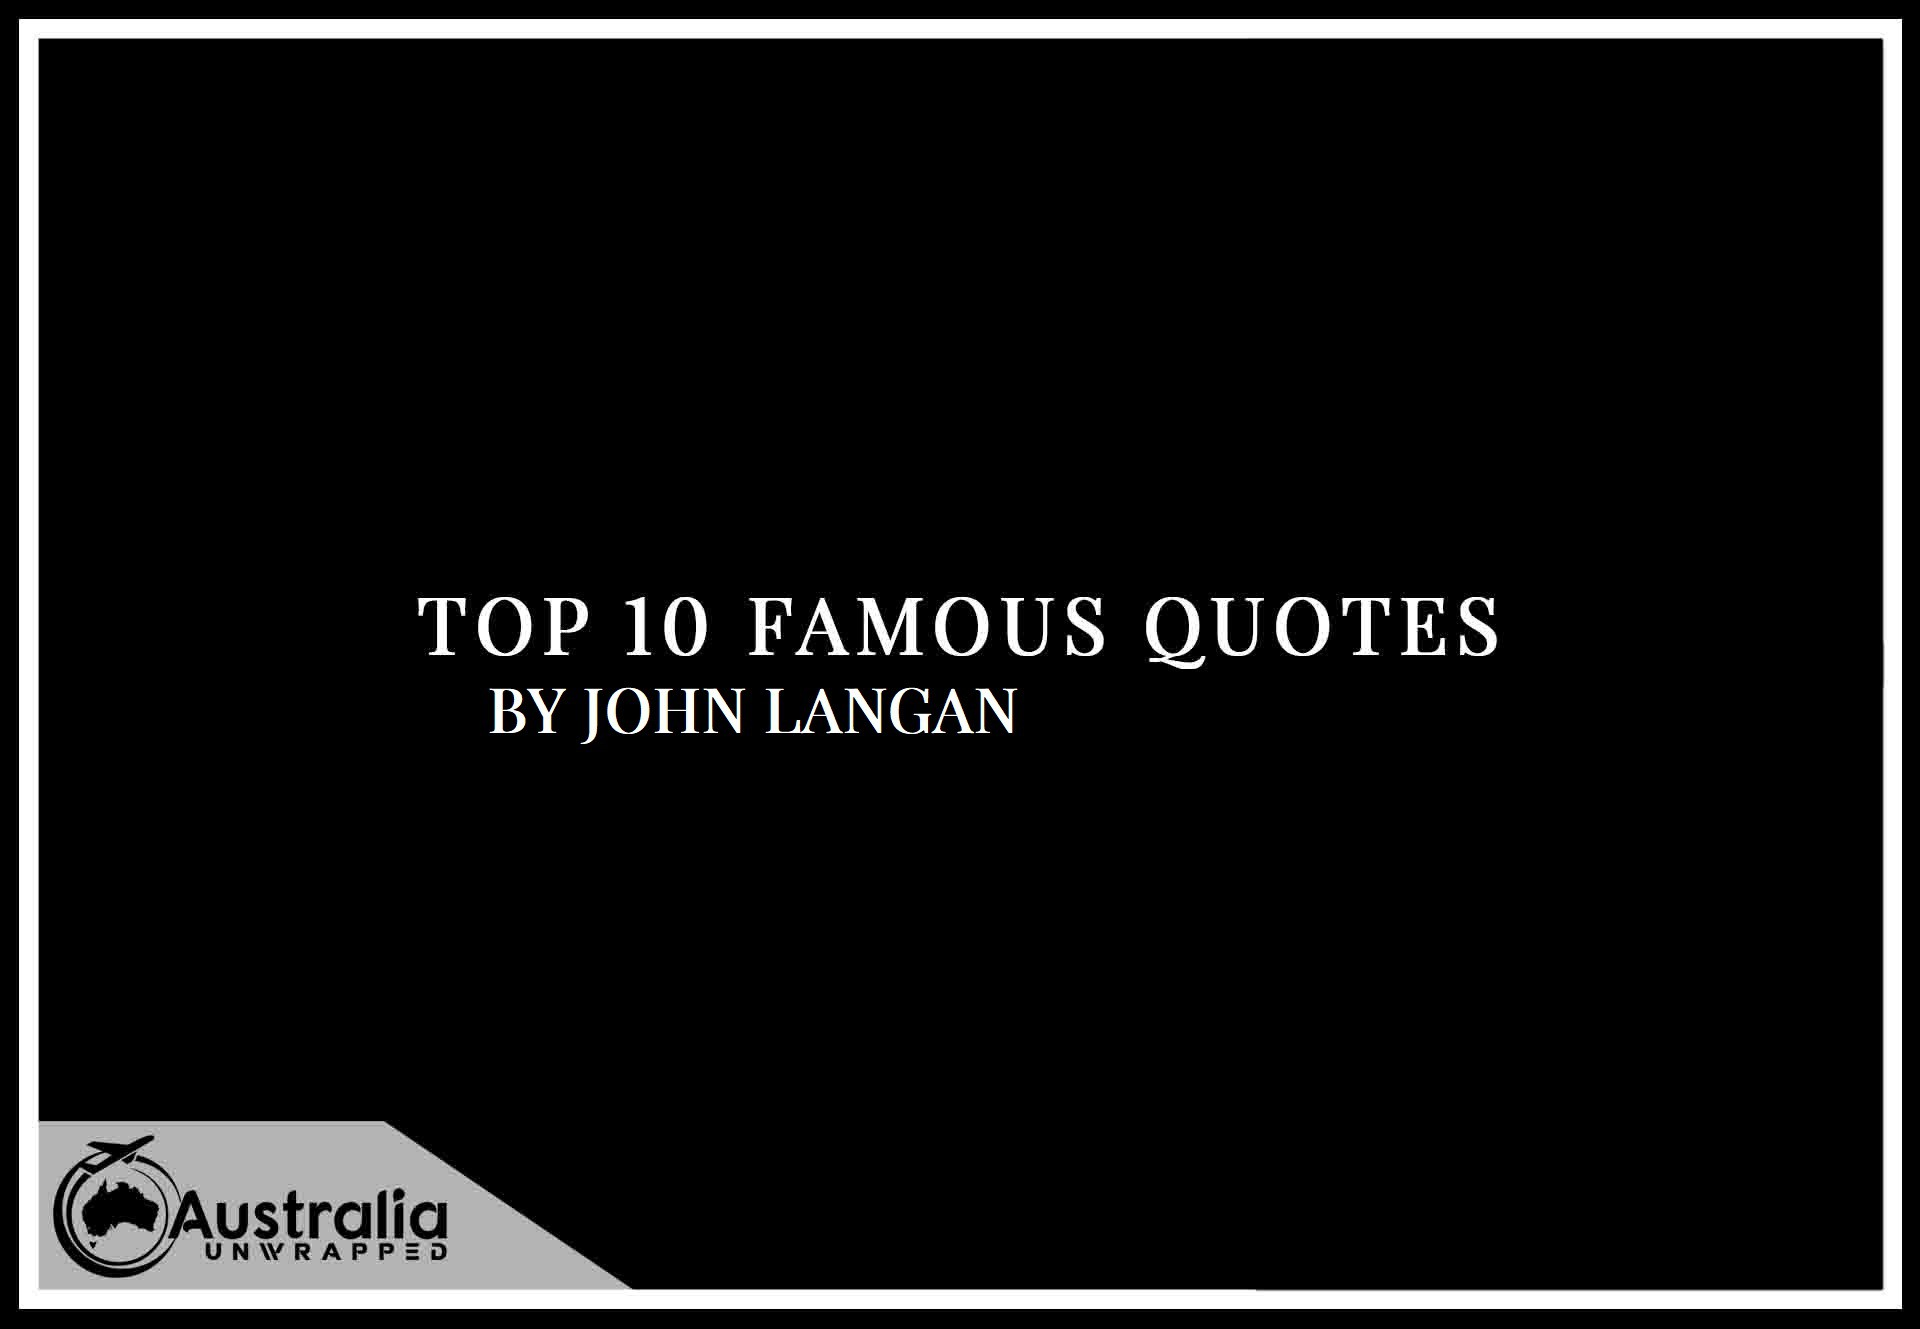 Top 10 Famous Quotes by Author John Langan